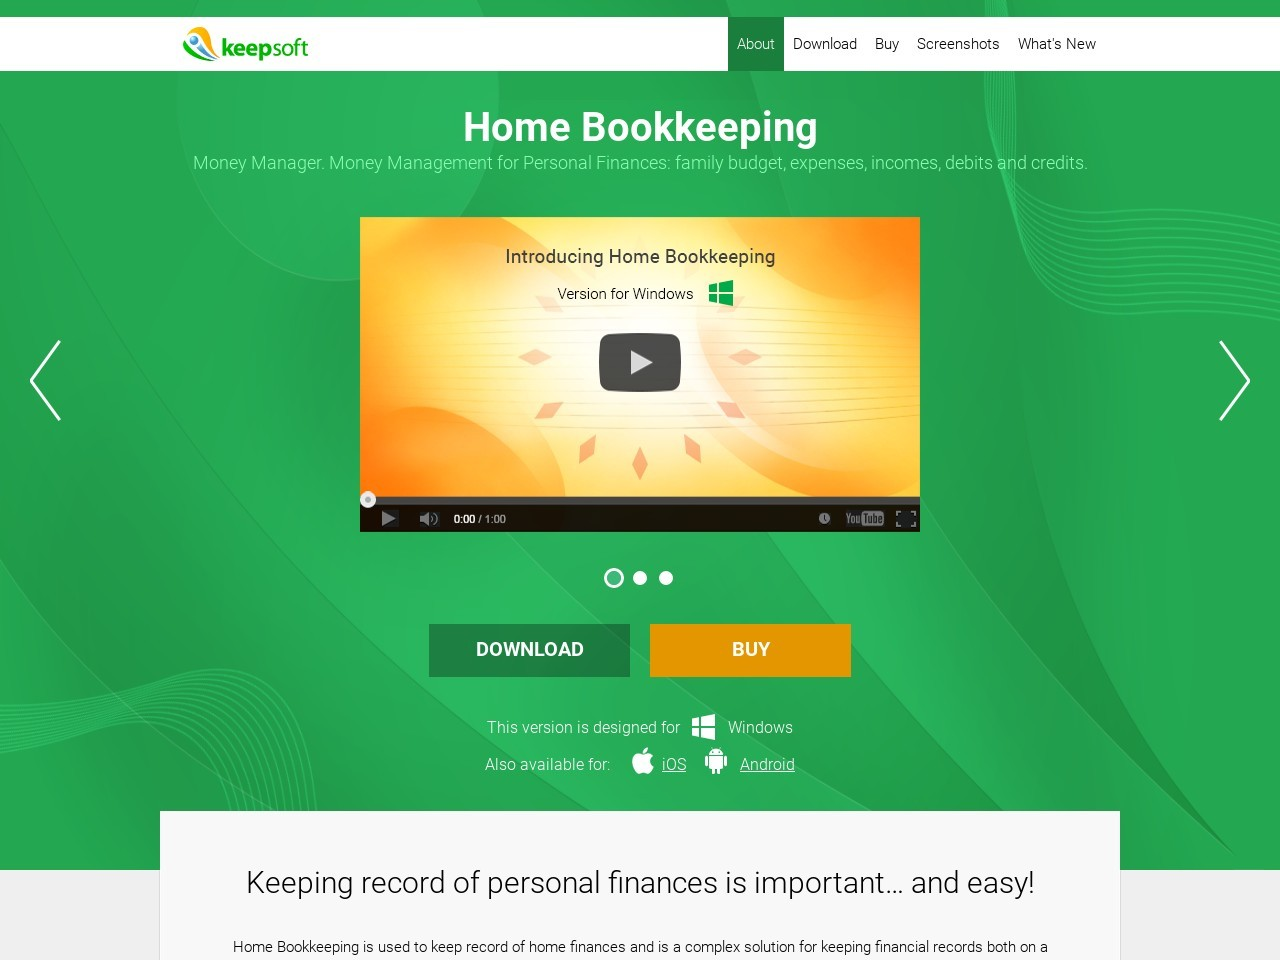 Home Bookkeeping for PC + Home Bookkeeping for mobile devices